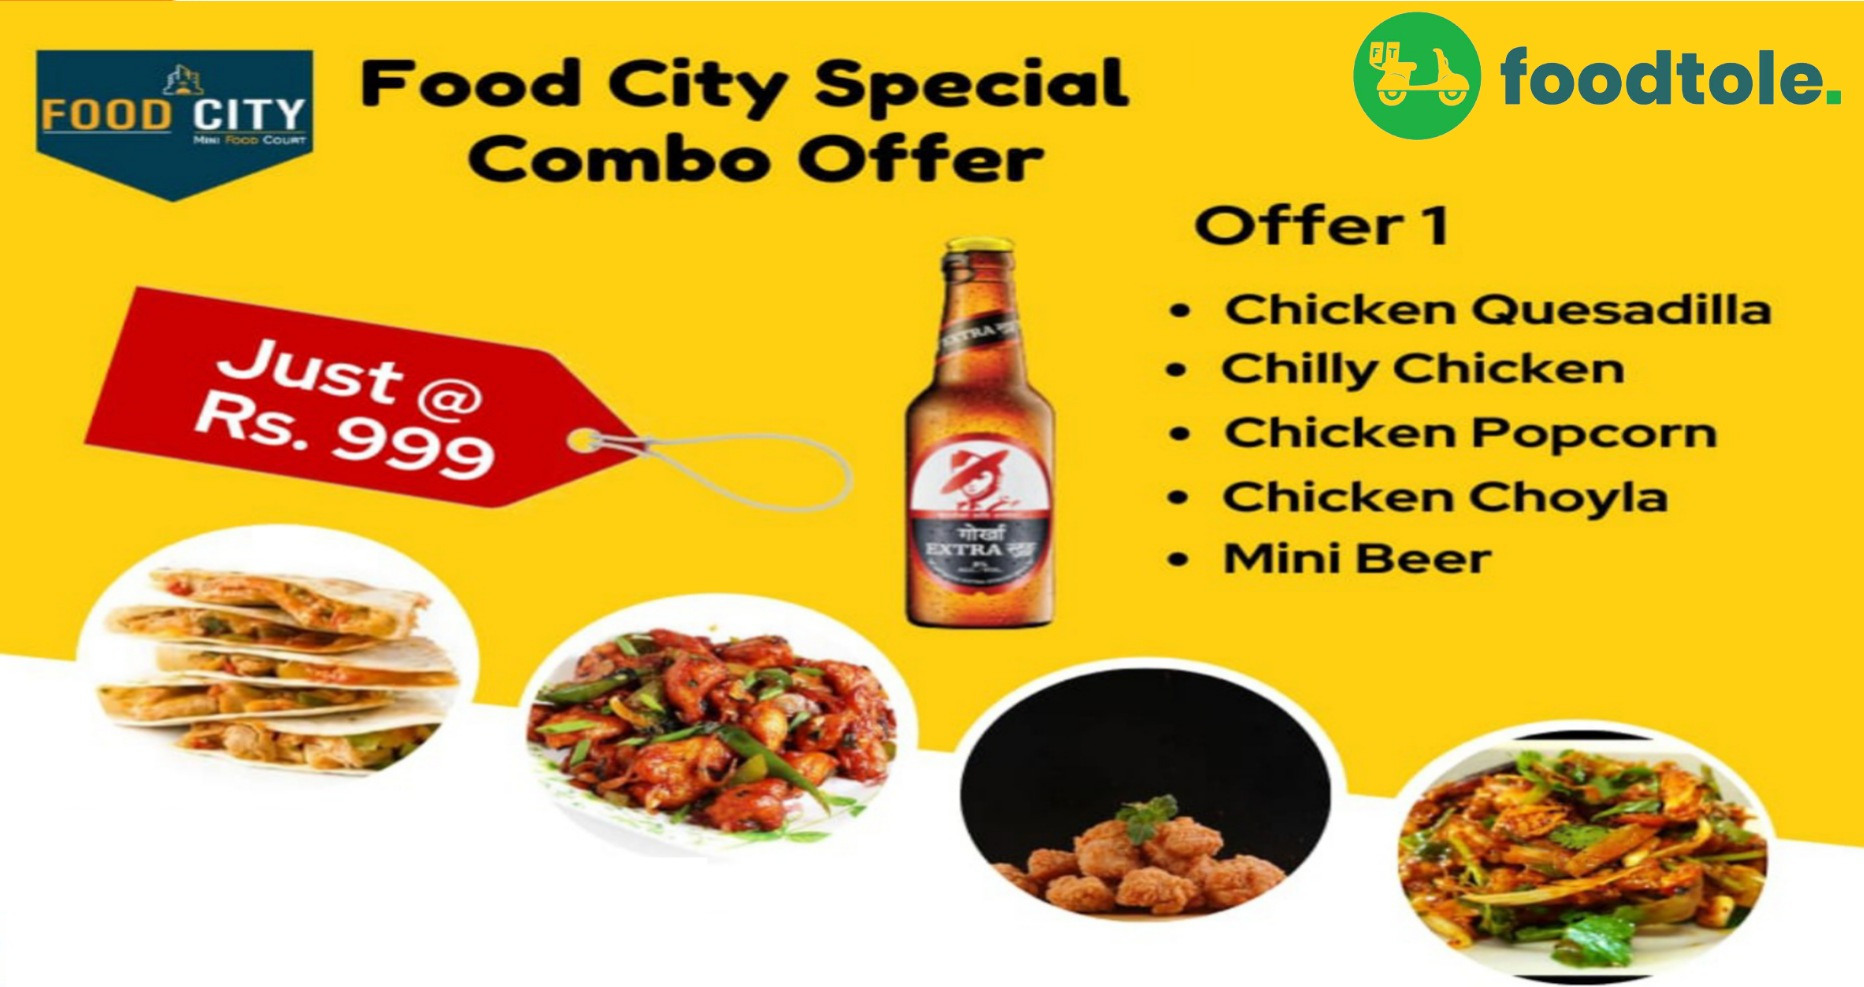 999 combo offer foodcity